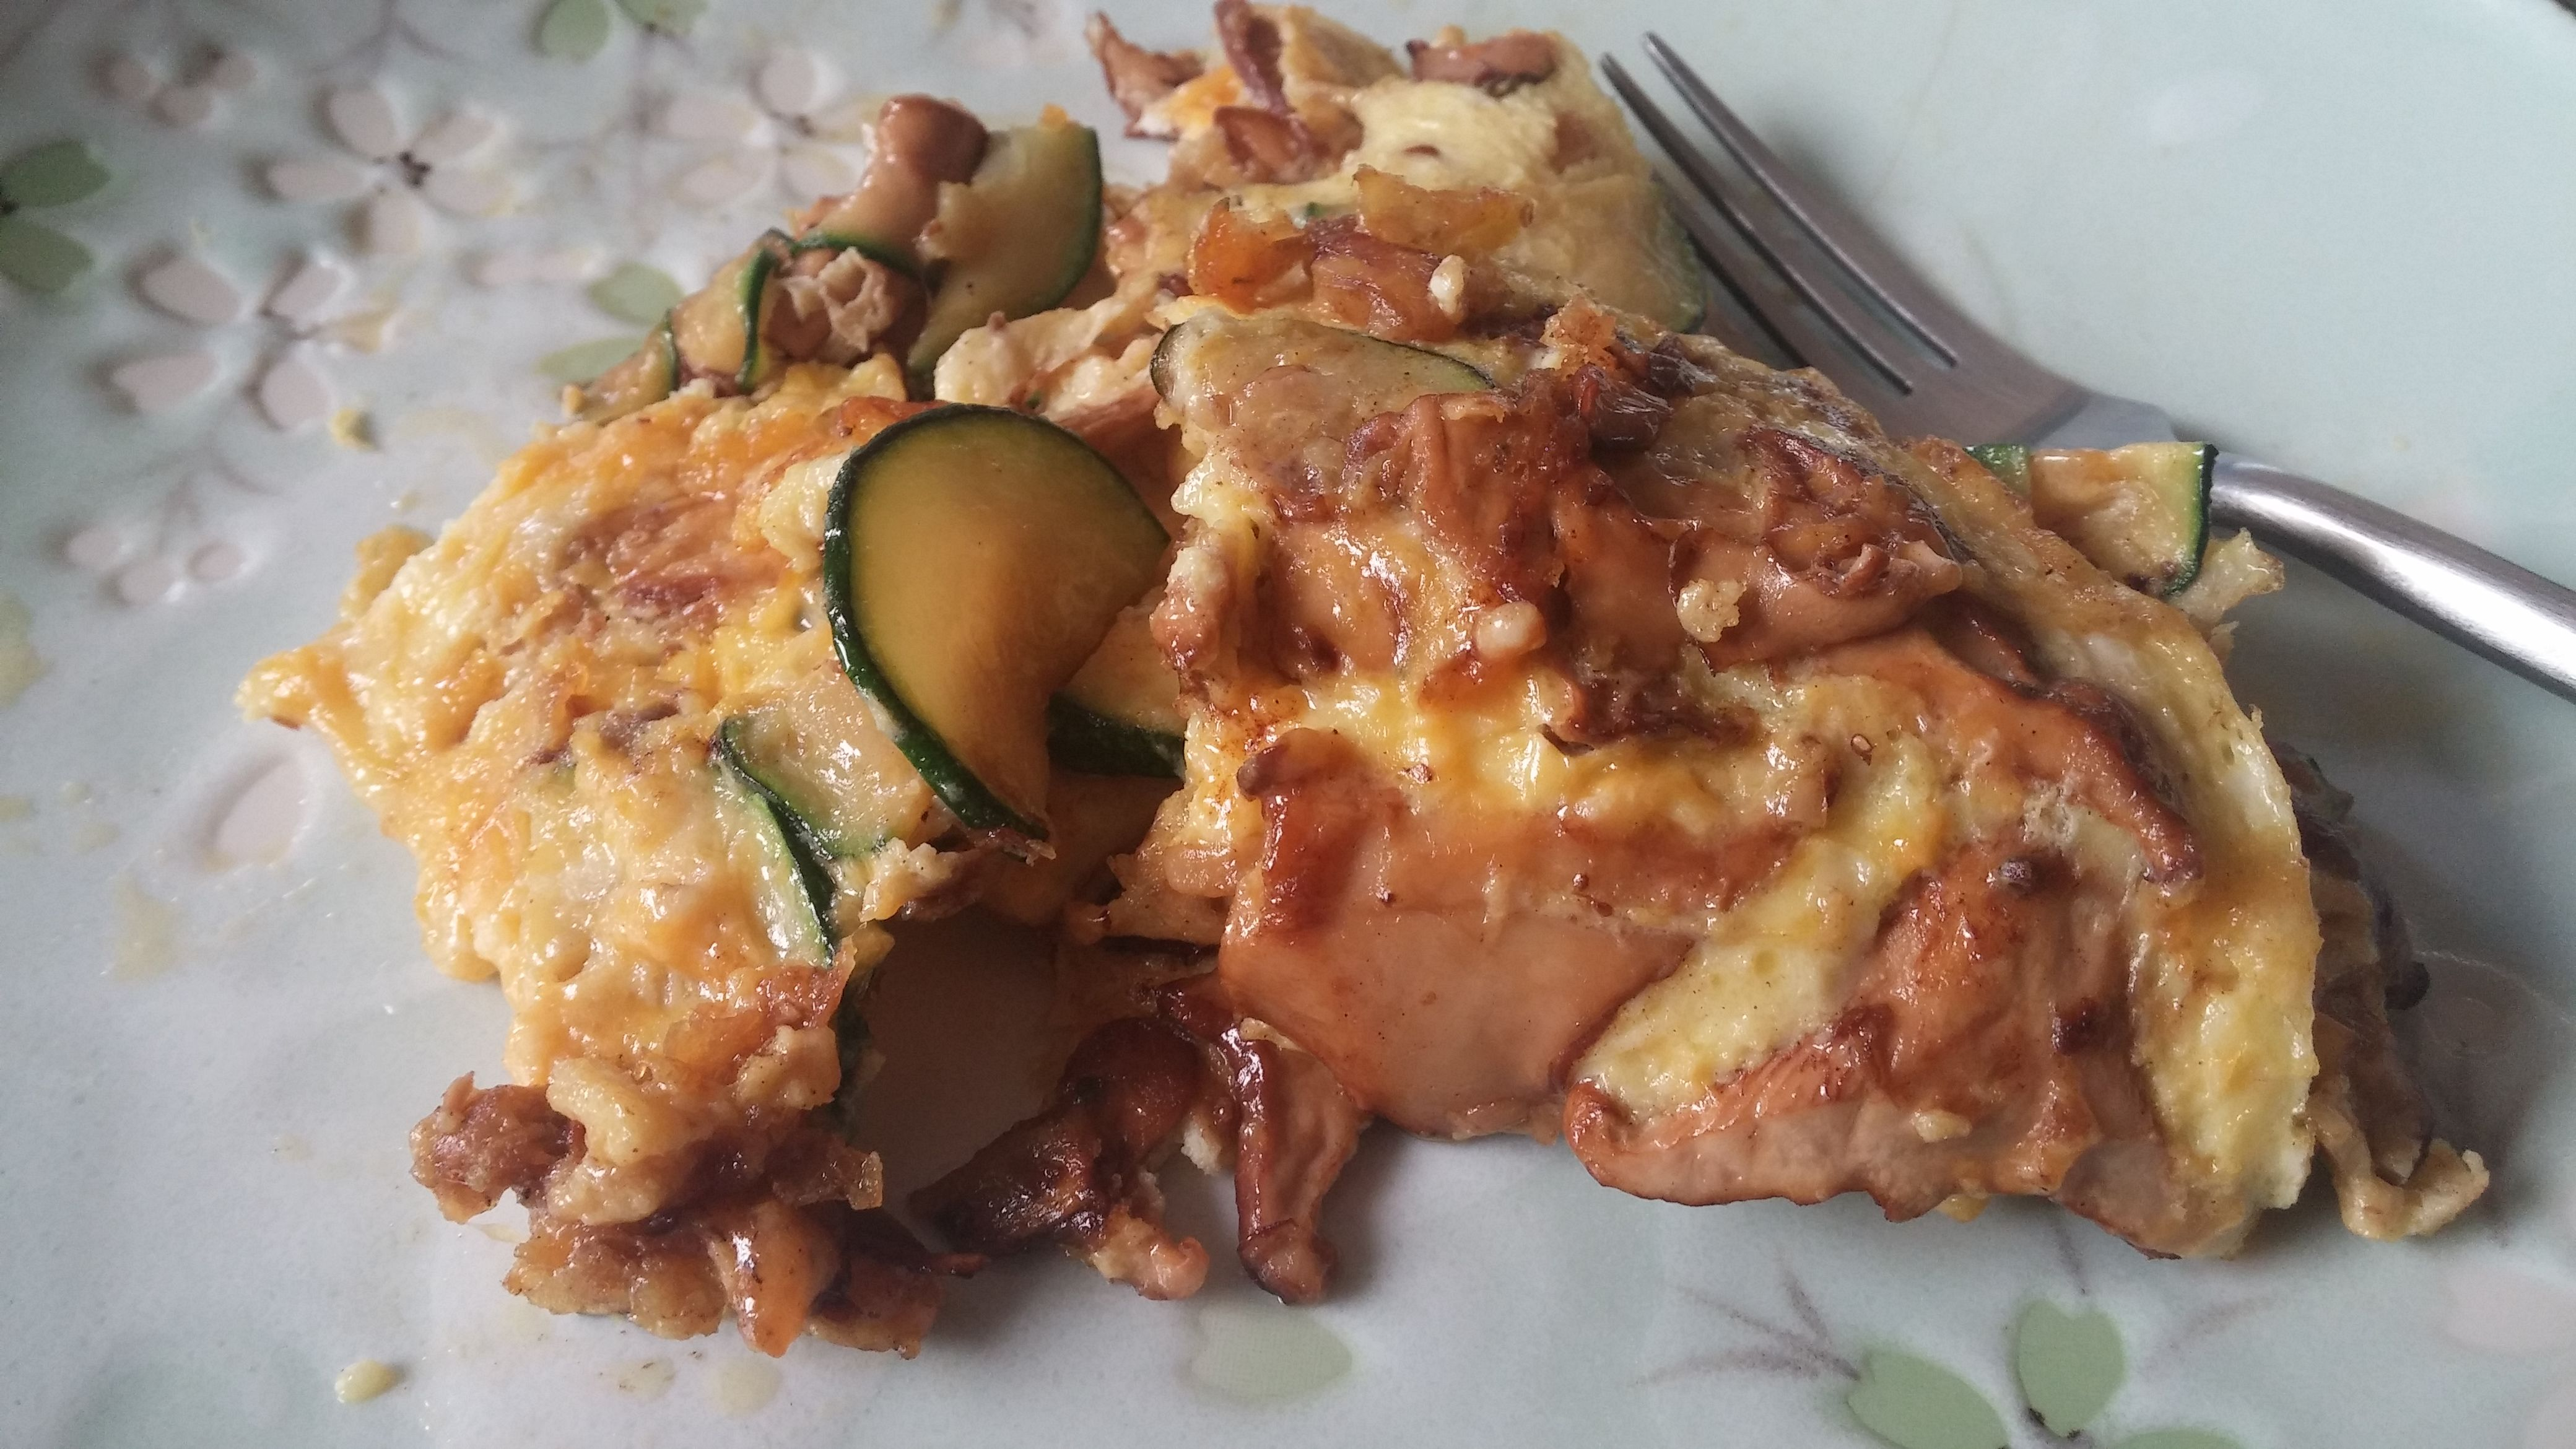 Keto Omelet with Zucchini and Chanterelle Mushrooms